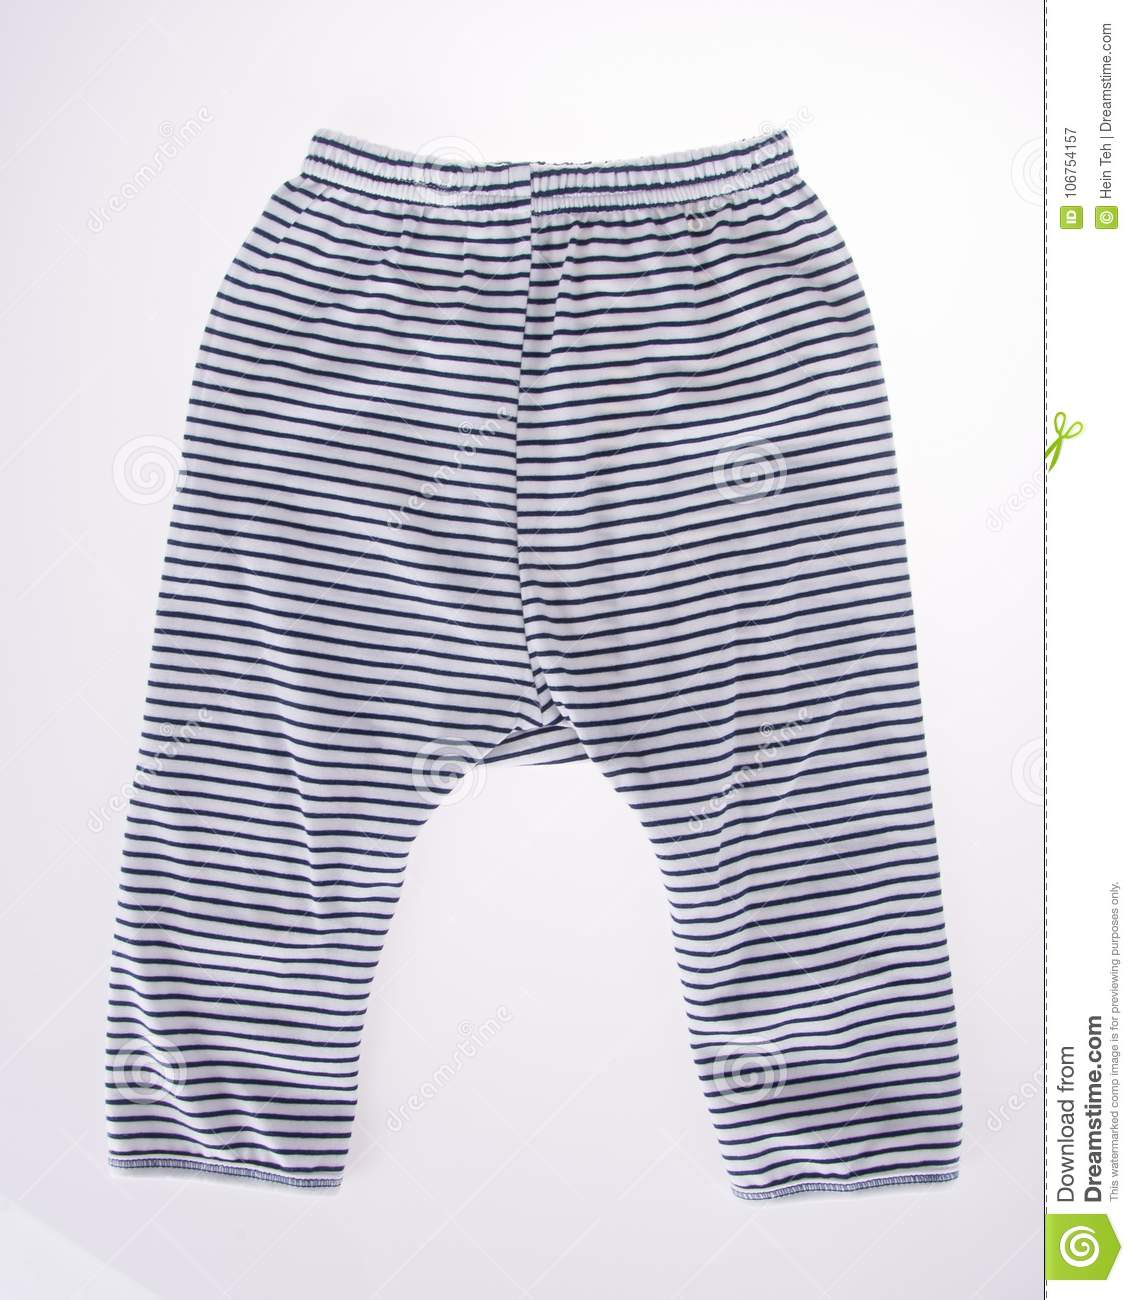 c074abf1d912 Childrens Striped Pants Isolated On A White Background Stock Image ...